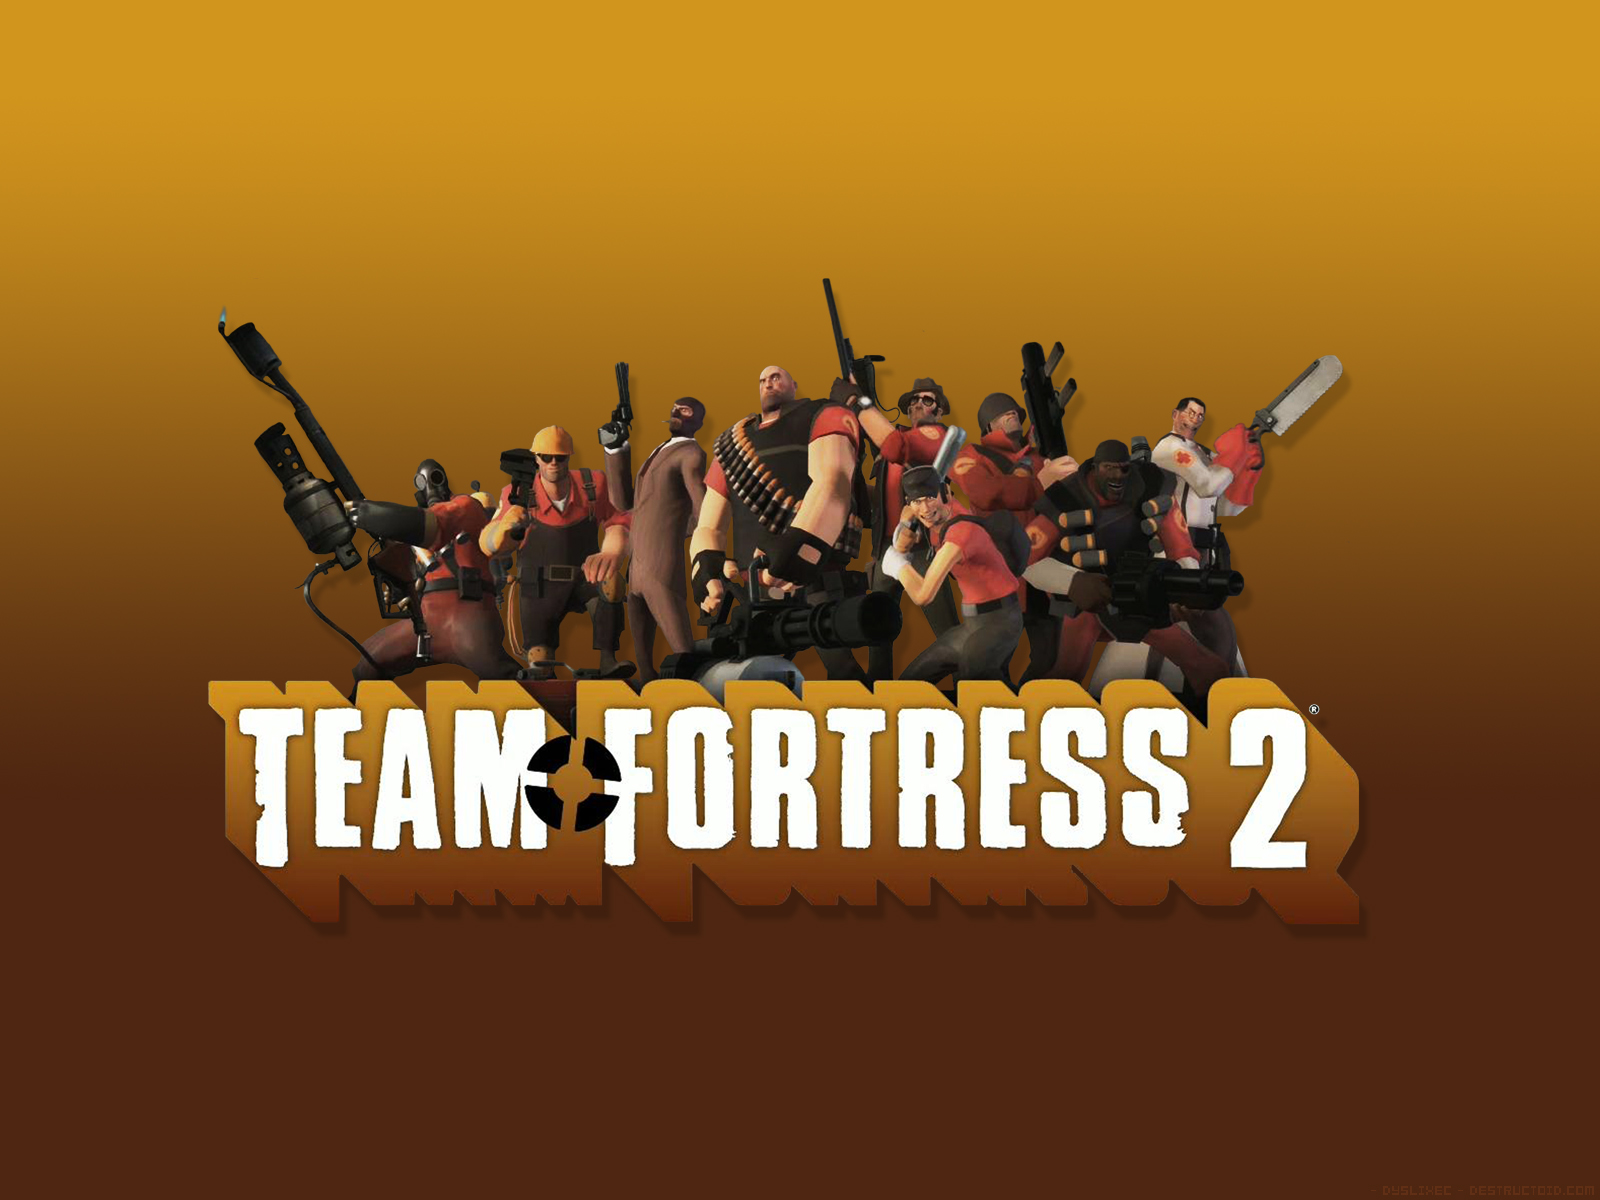 new tf2 wallpapers backgrounds-#22